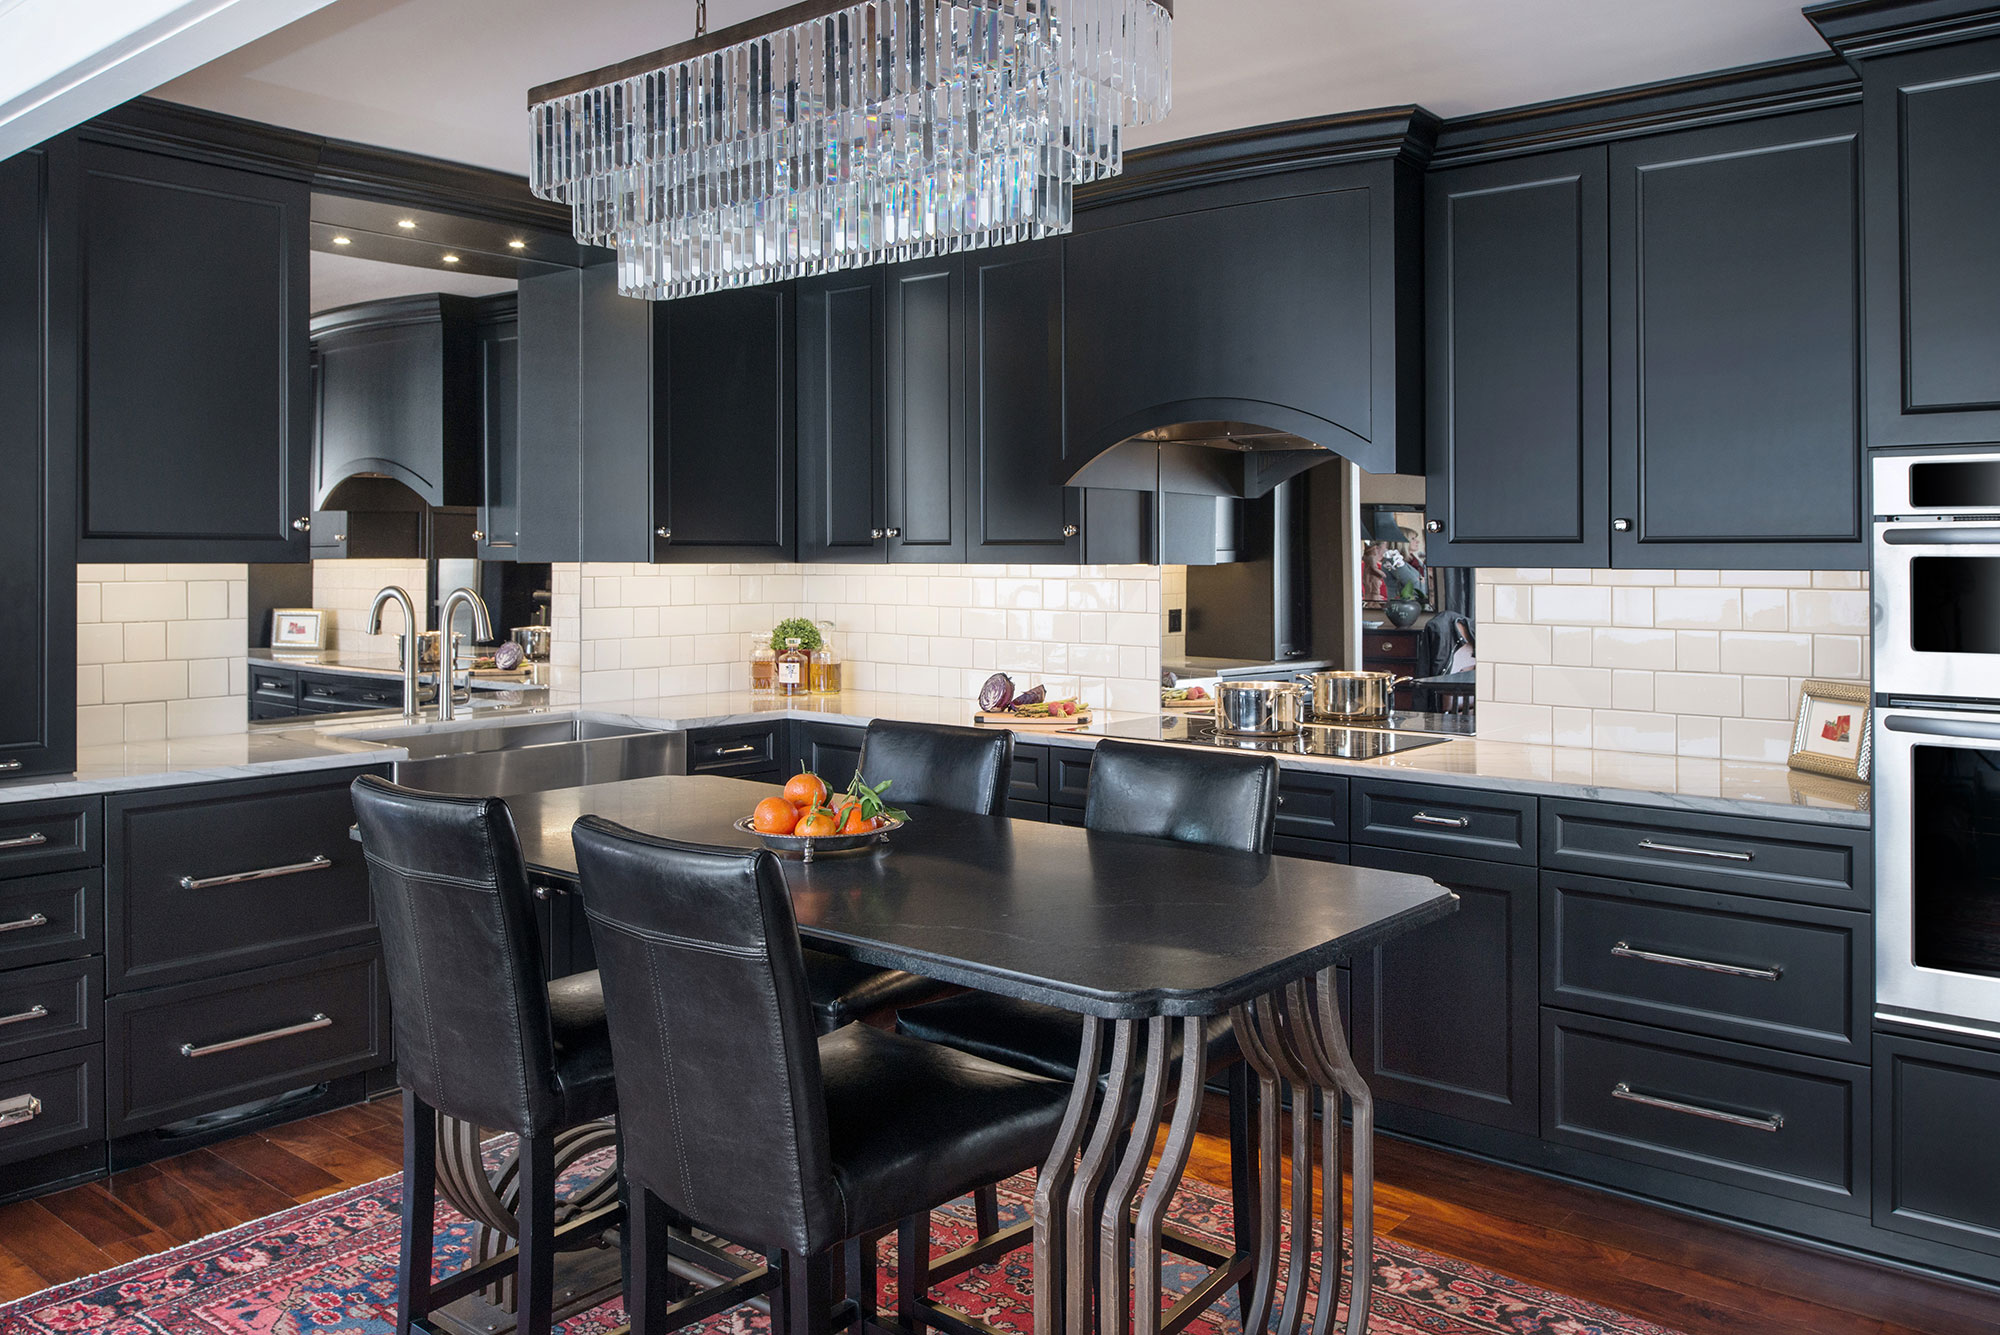 Painted Black Transitional Style Kitchen - Crystal Cabinets